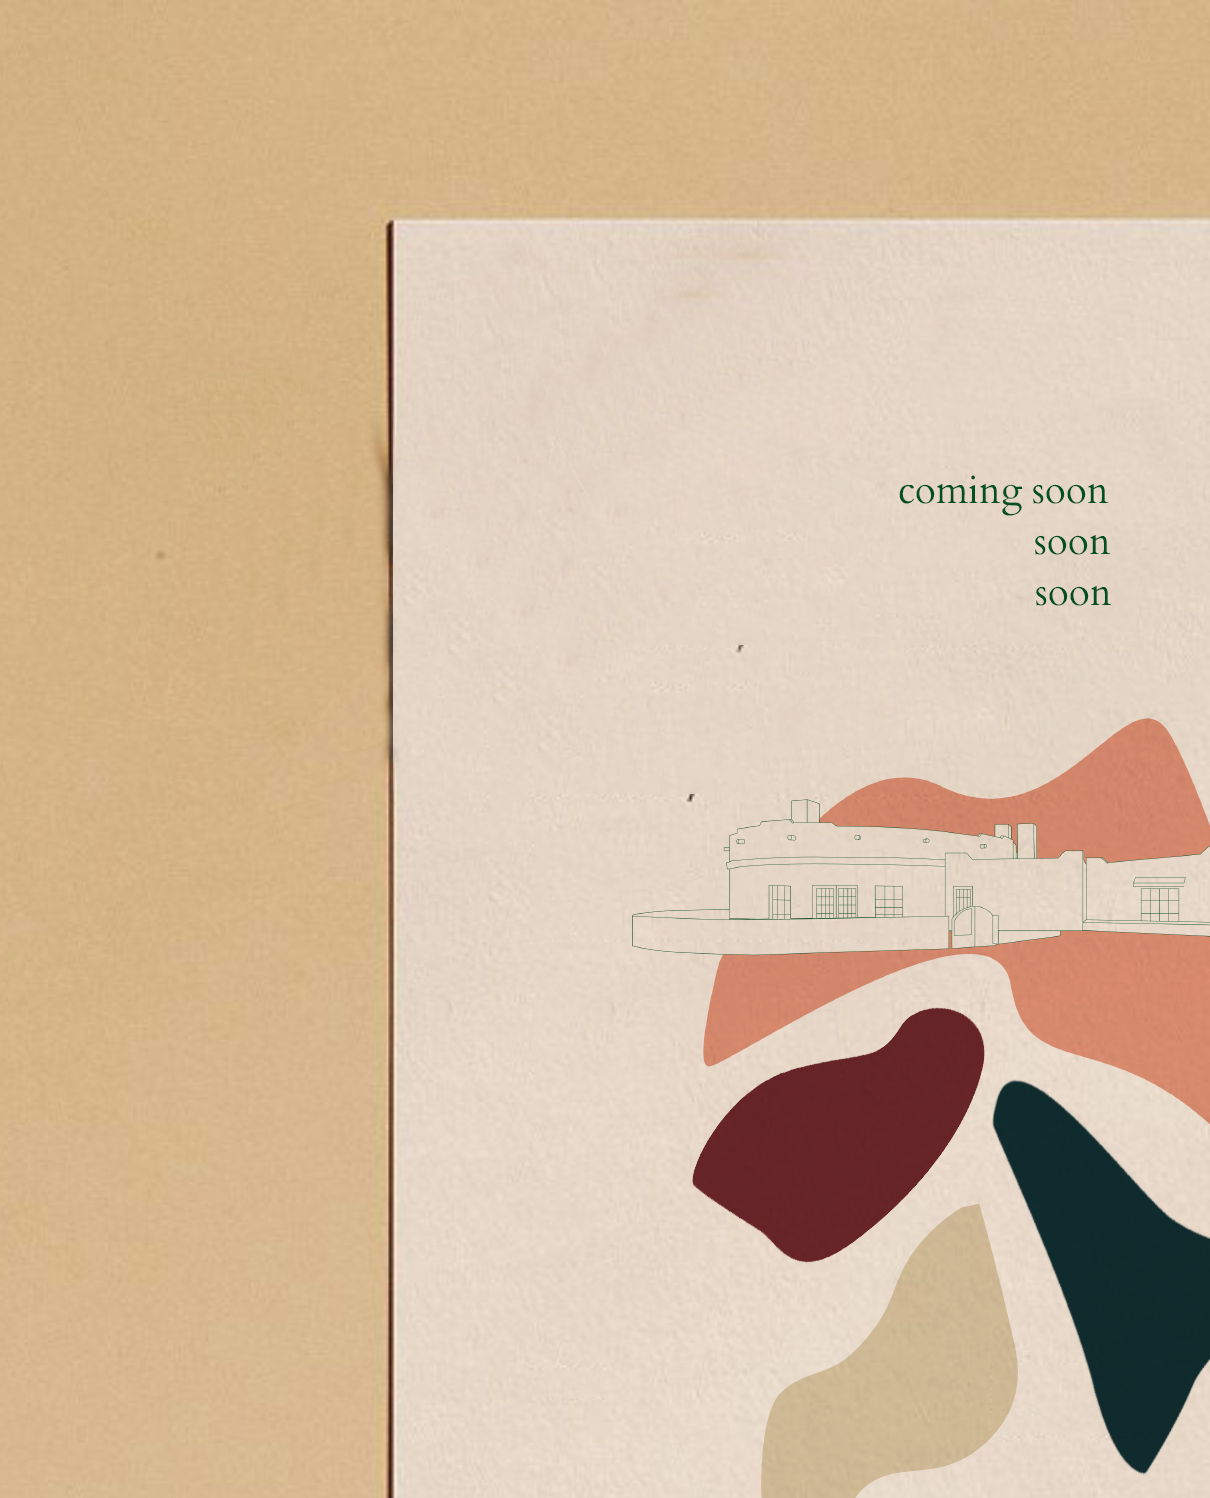 Little Pueblo  - Identity for a boutique inn in Taos, New Mexico.